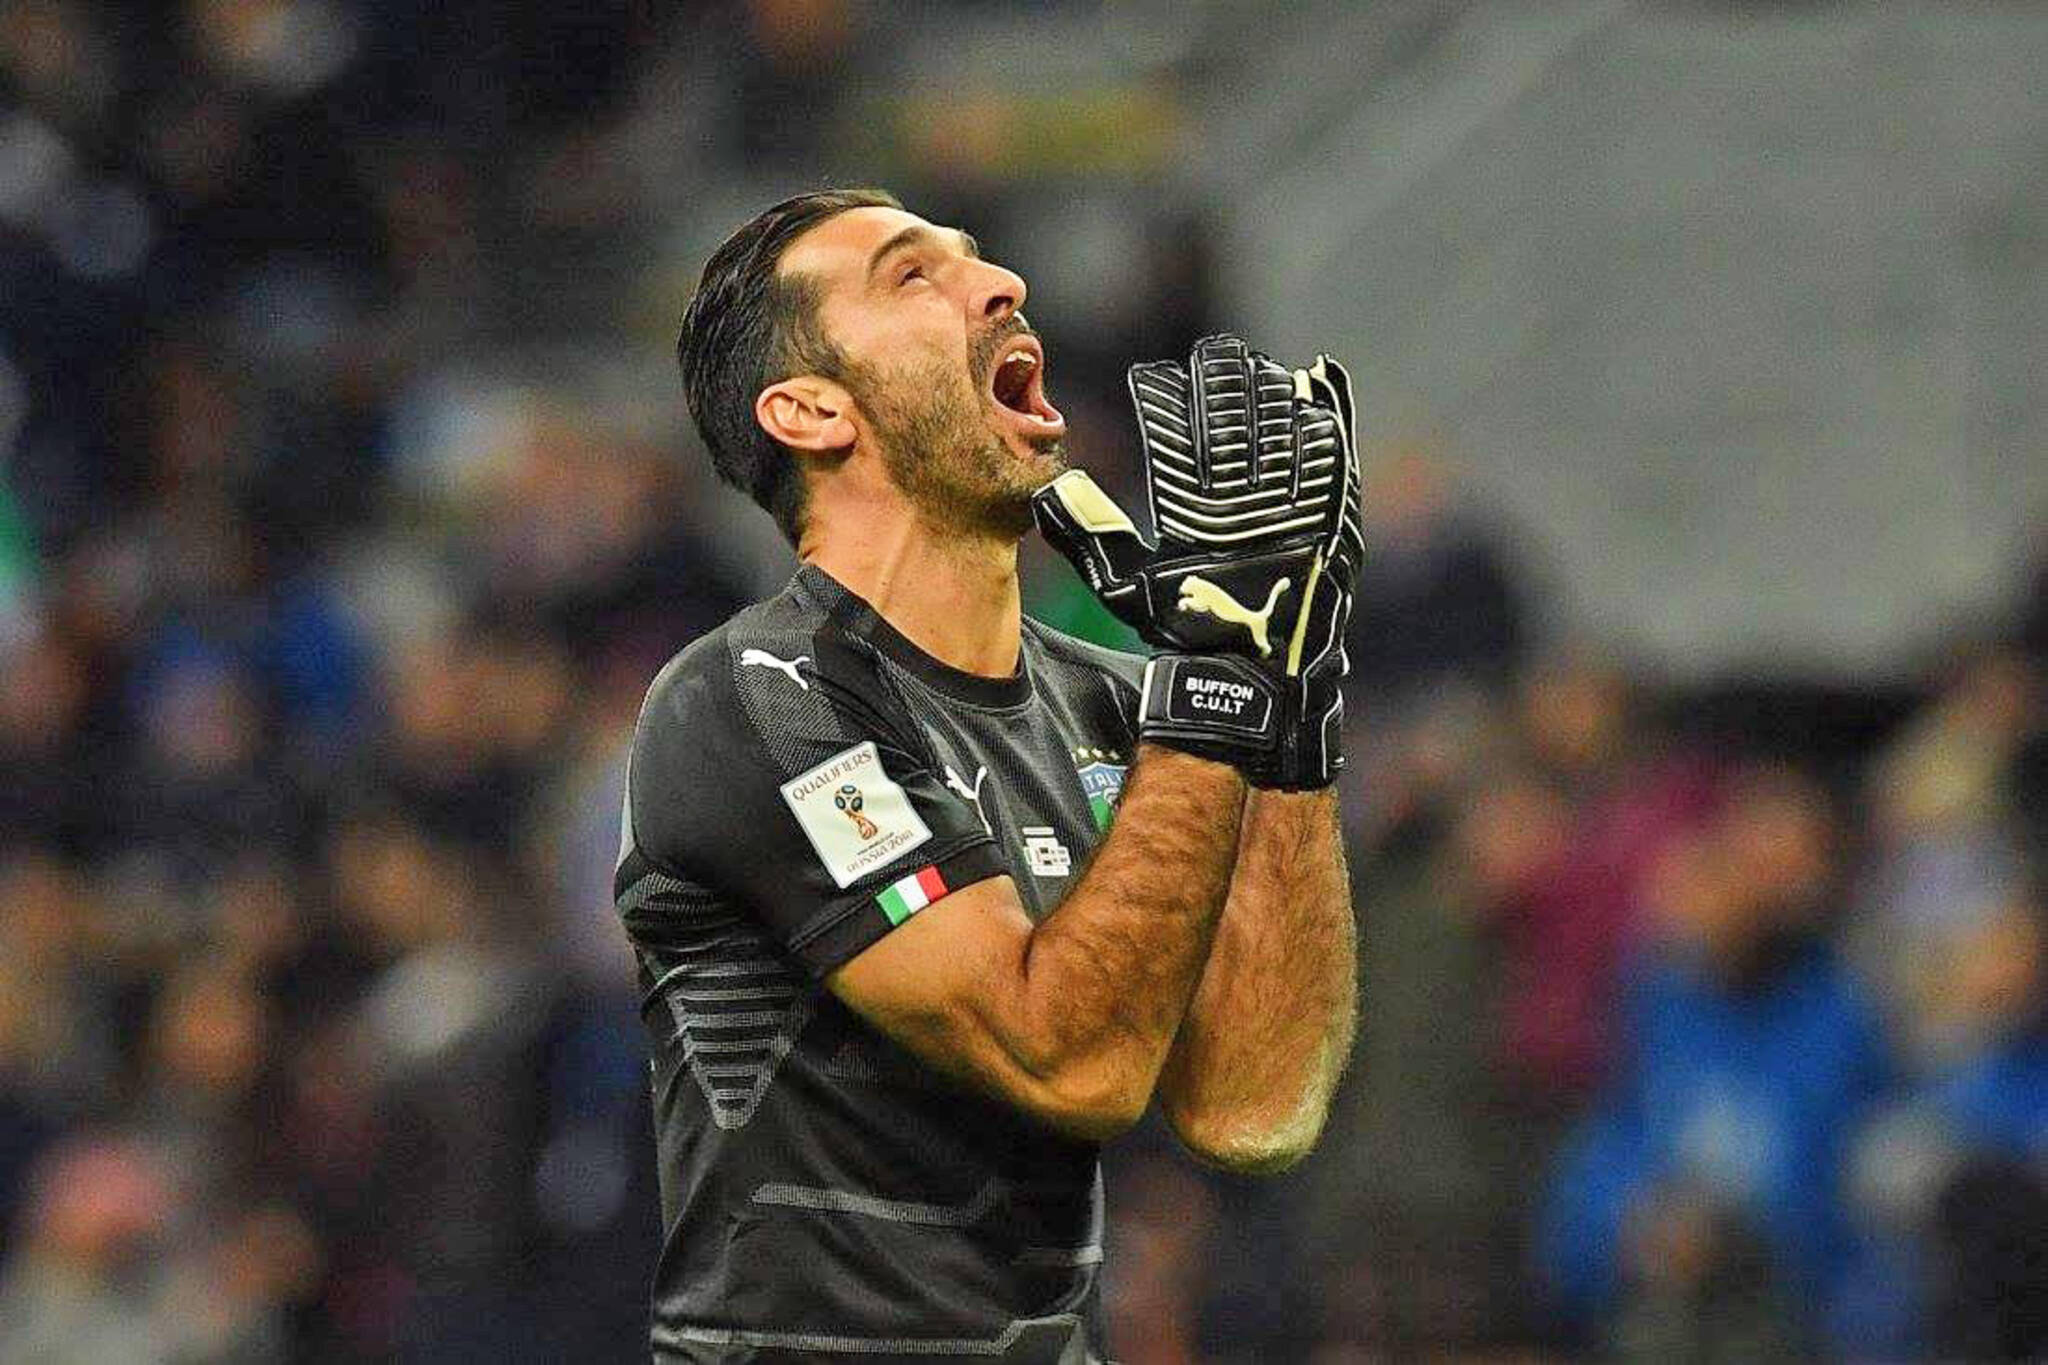 Italy World Cup Cmd Resize Crop Quality 70 Height Toronto  Wont Playing